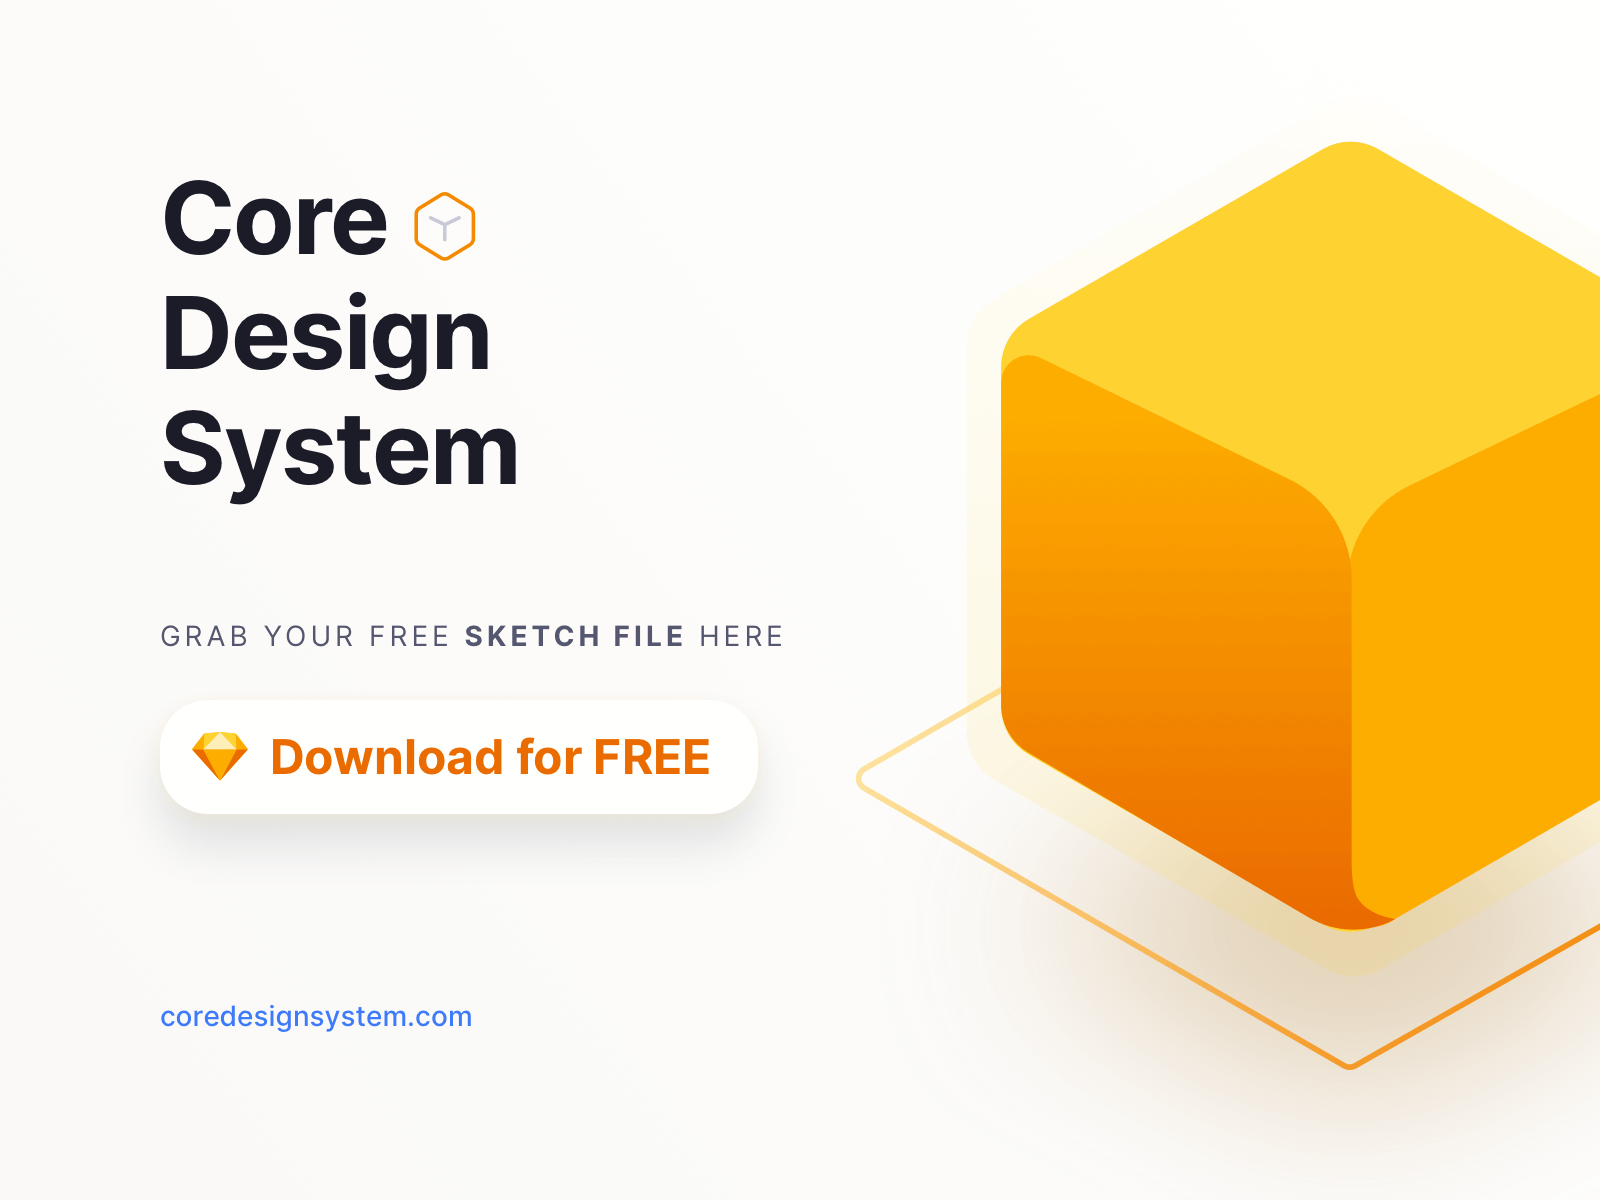 Core Design System - Sketch Free File cover image